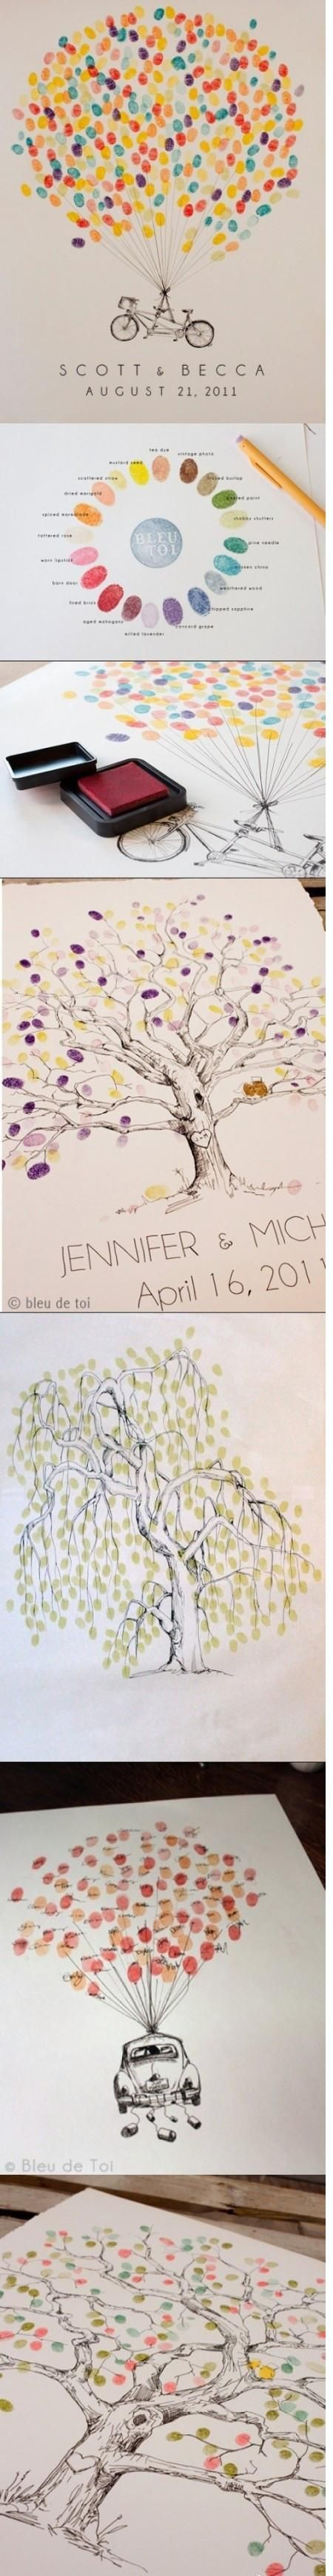 "various ideas for guestbook ""signed""  with thumbprints"